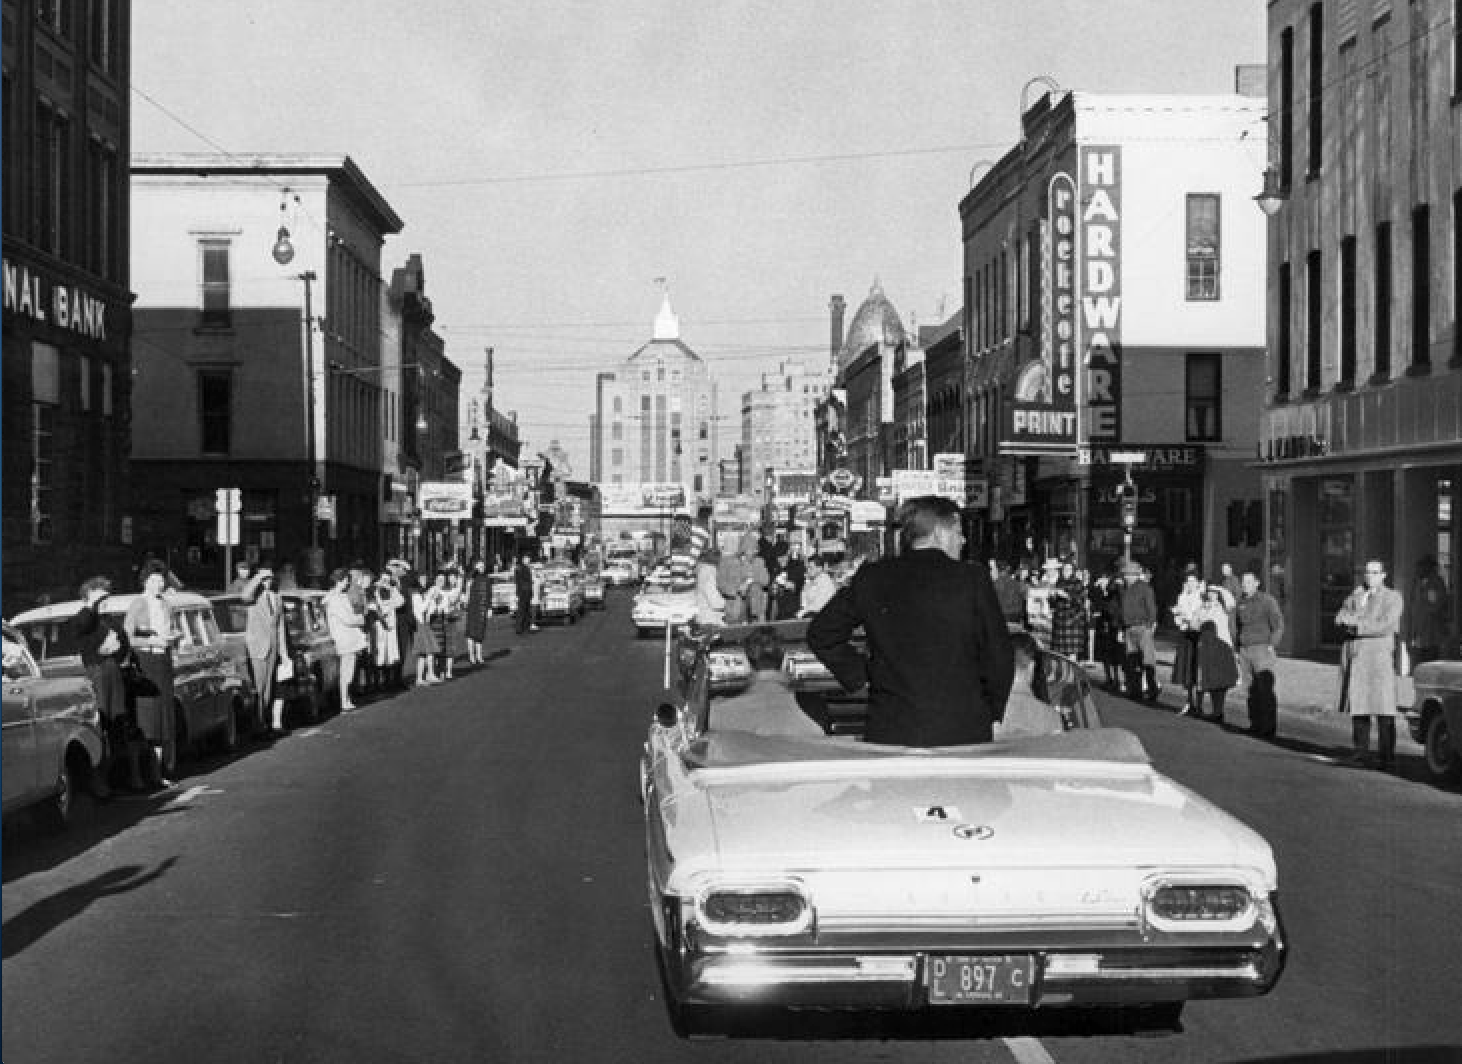 John_F_Kennedy_campaigns_in_downtown_Roc